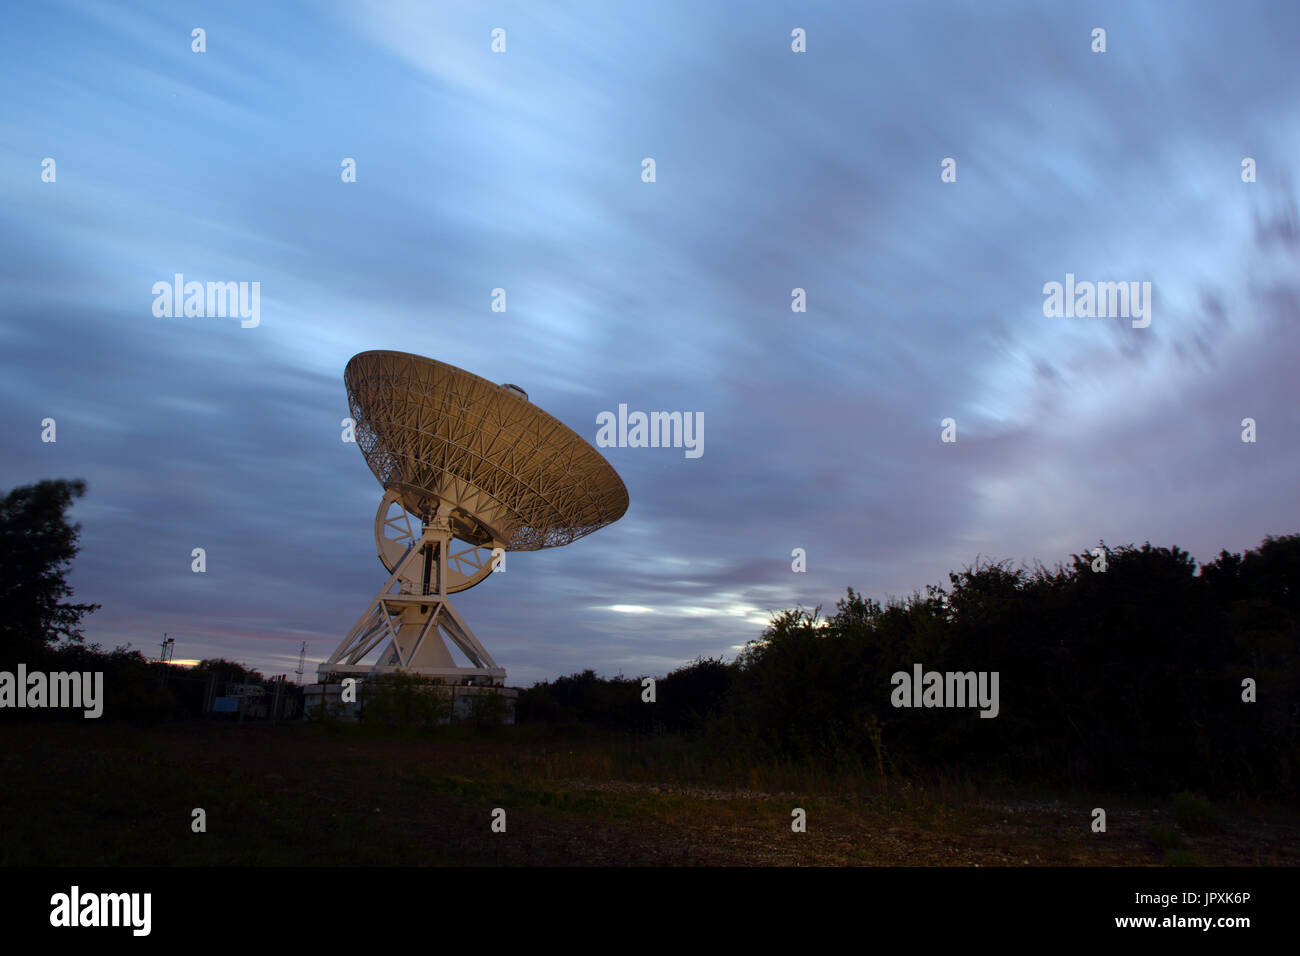 MERLIN or the Multi-Element Radio Linked Interferometer Network radio telescope at The Mullard Radio Observatory - Stock Image